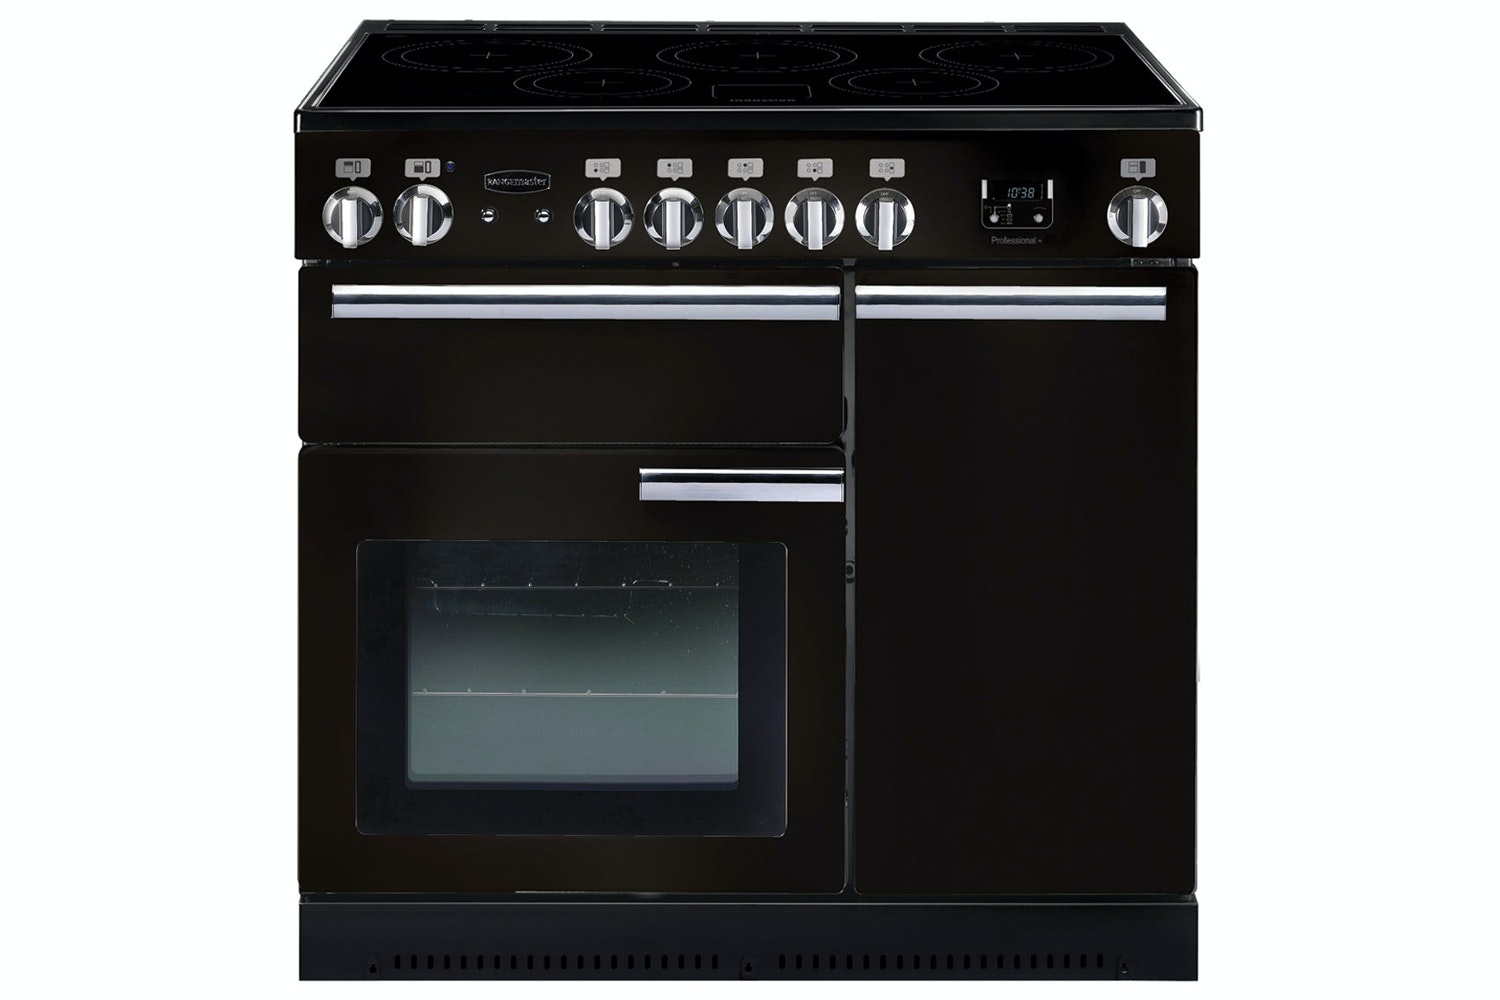 Rangemaster Professional Plus 90cm Electric Range Cooker | PROP90EIGB/C | Black